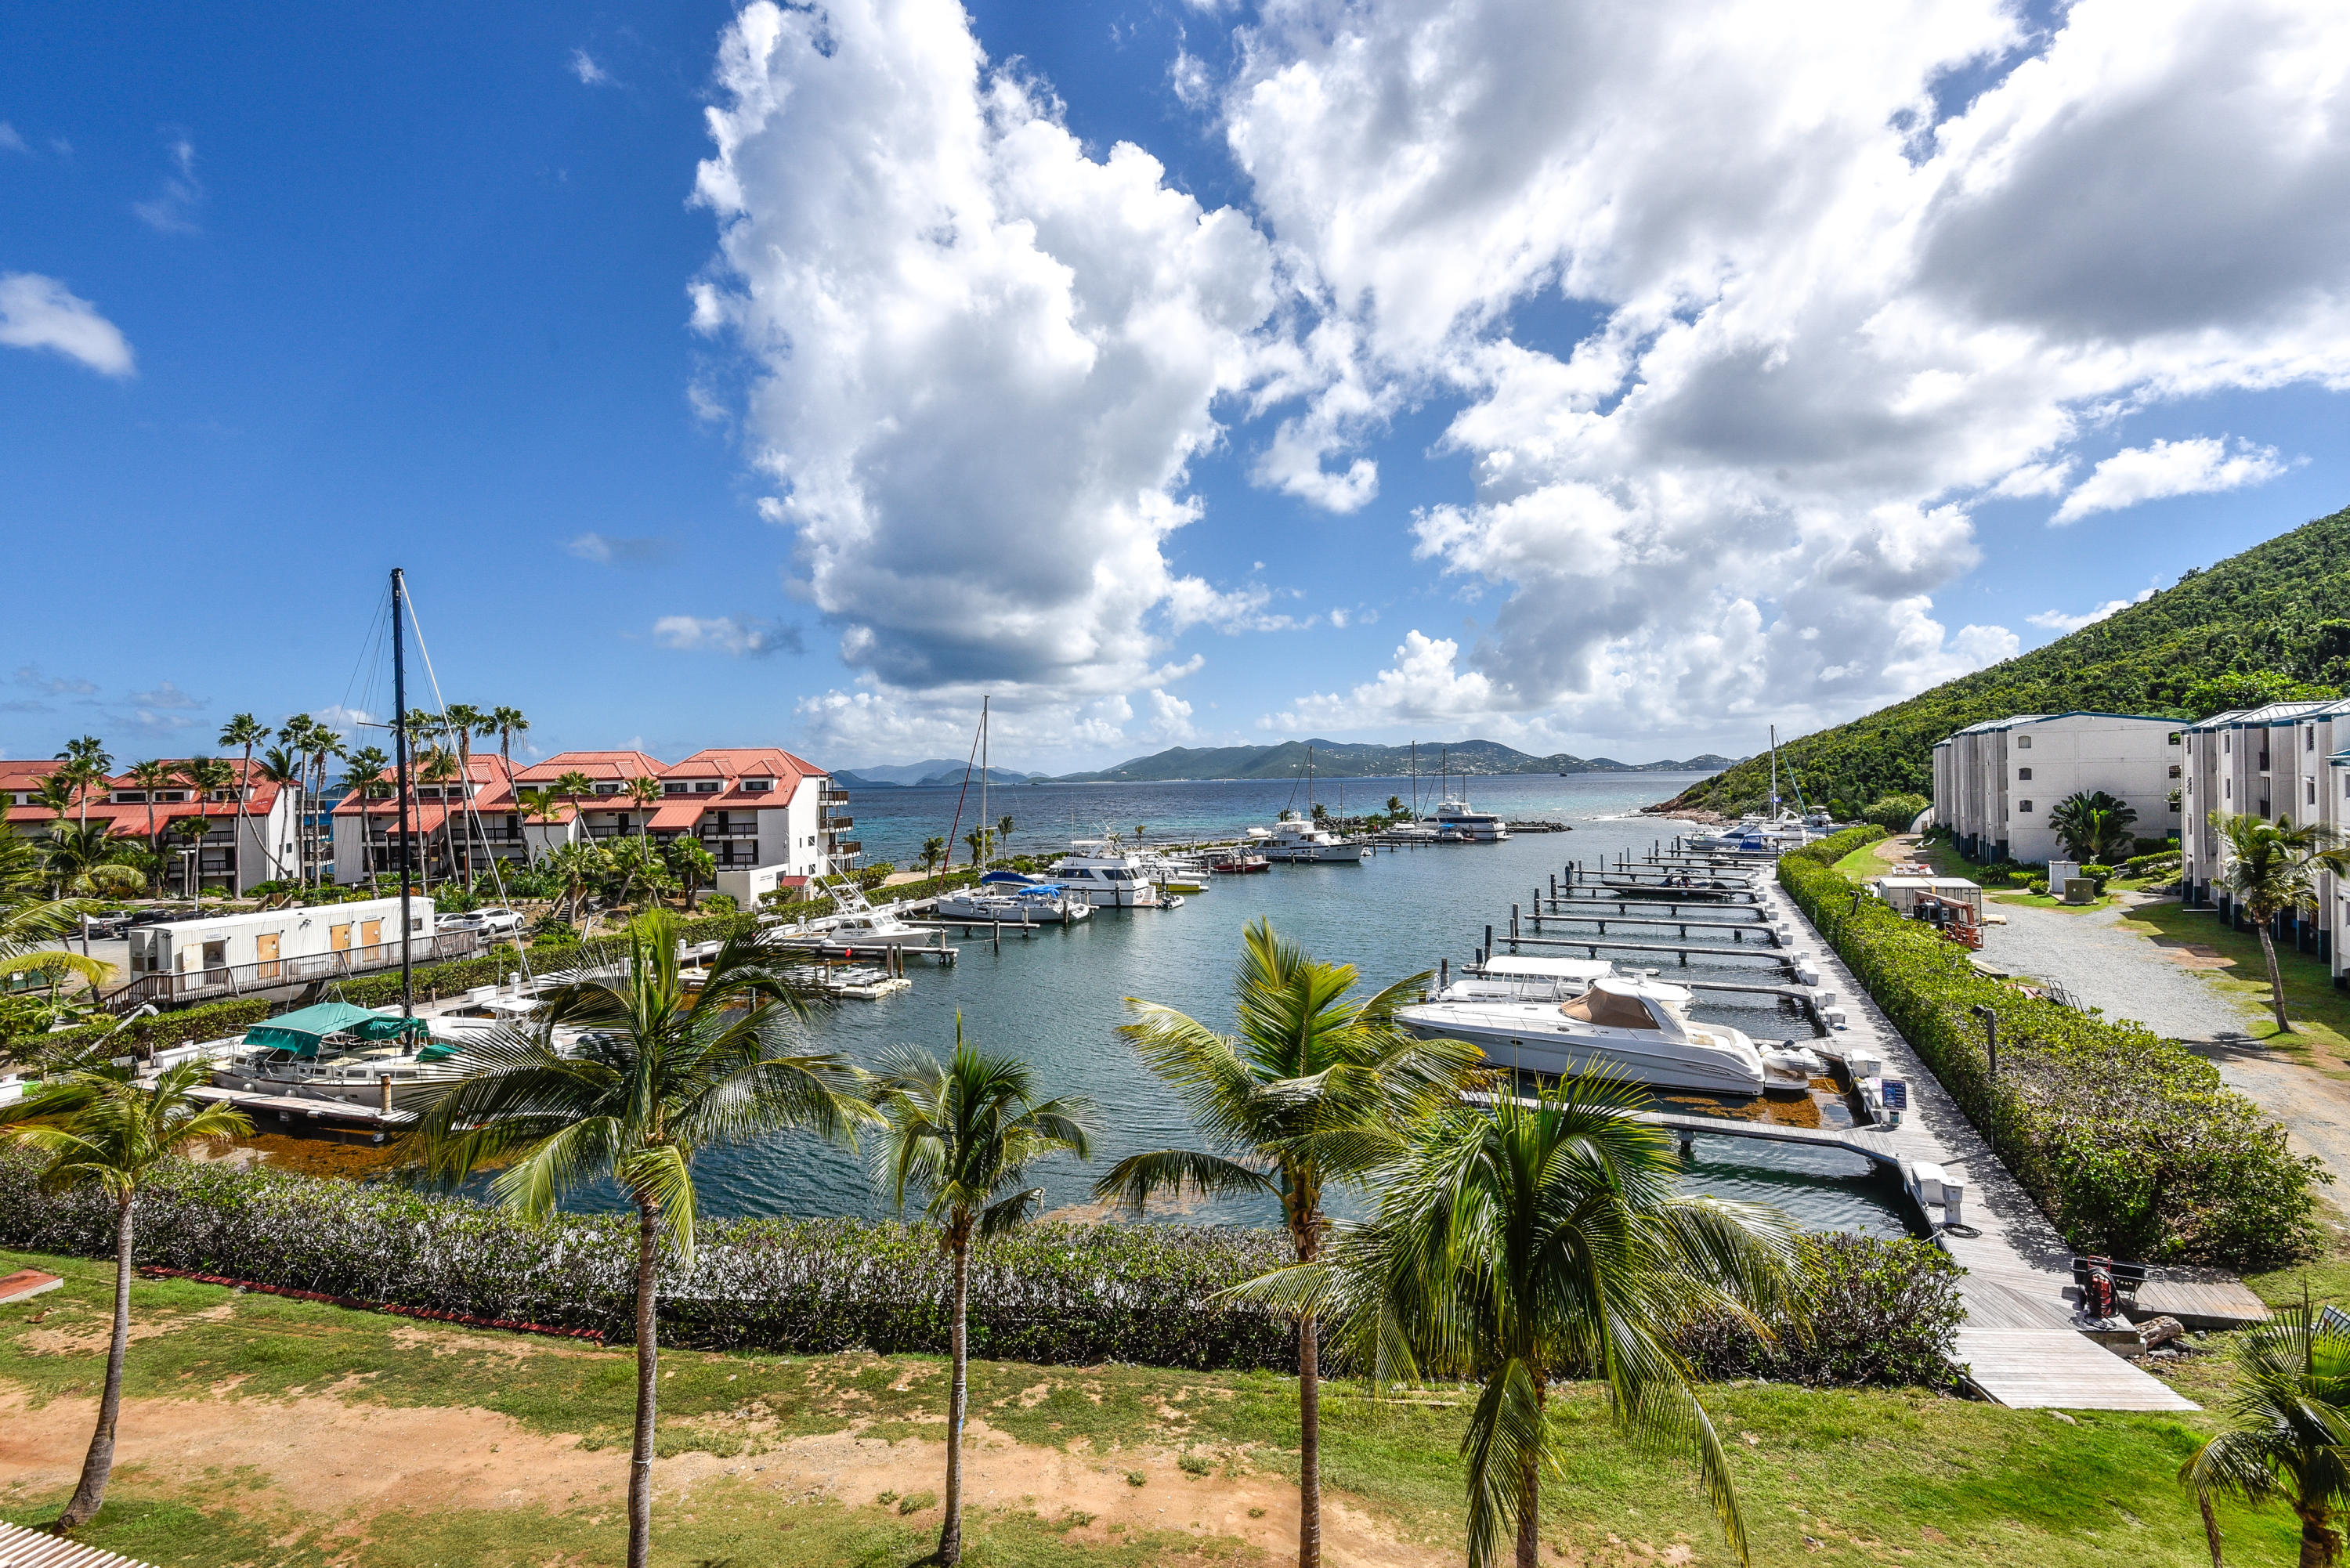 Additional photo for property listing at Sapphire Beach Resort & Marina 110 Smith Bay EE Sapphire Beach Resort & Marina 110 Smith Bay EE St Thomas, Virgin Islands 00802 United States Virgin Islands